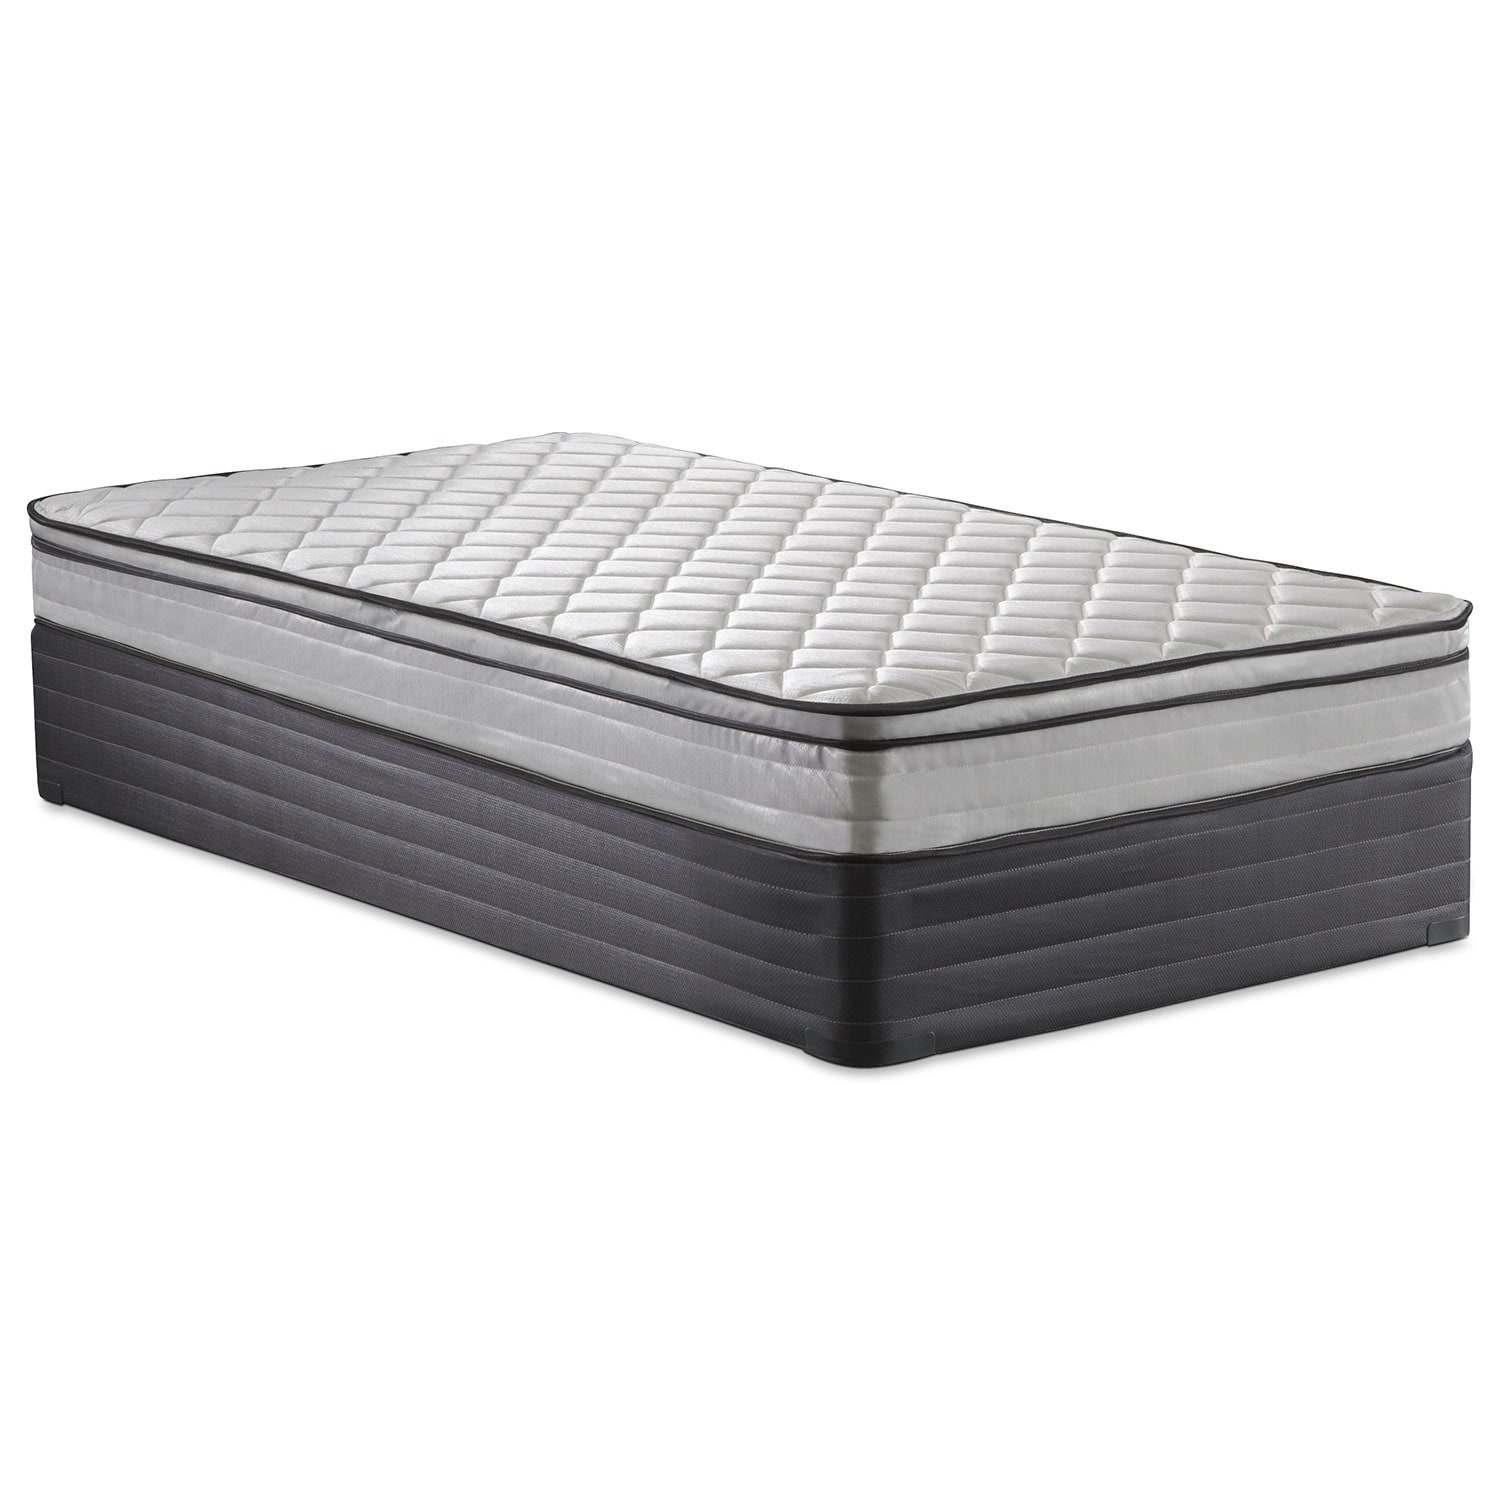 Mirage Medium Firm Twin Mattress And Foundation Set Value City Furniture And Mattresses